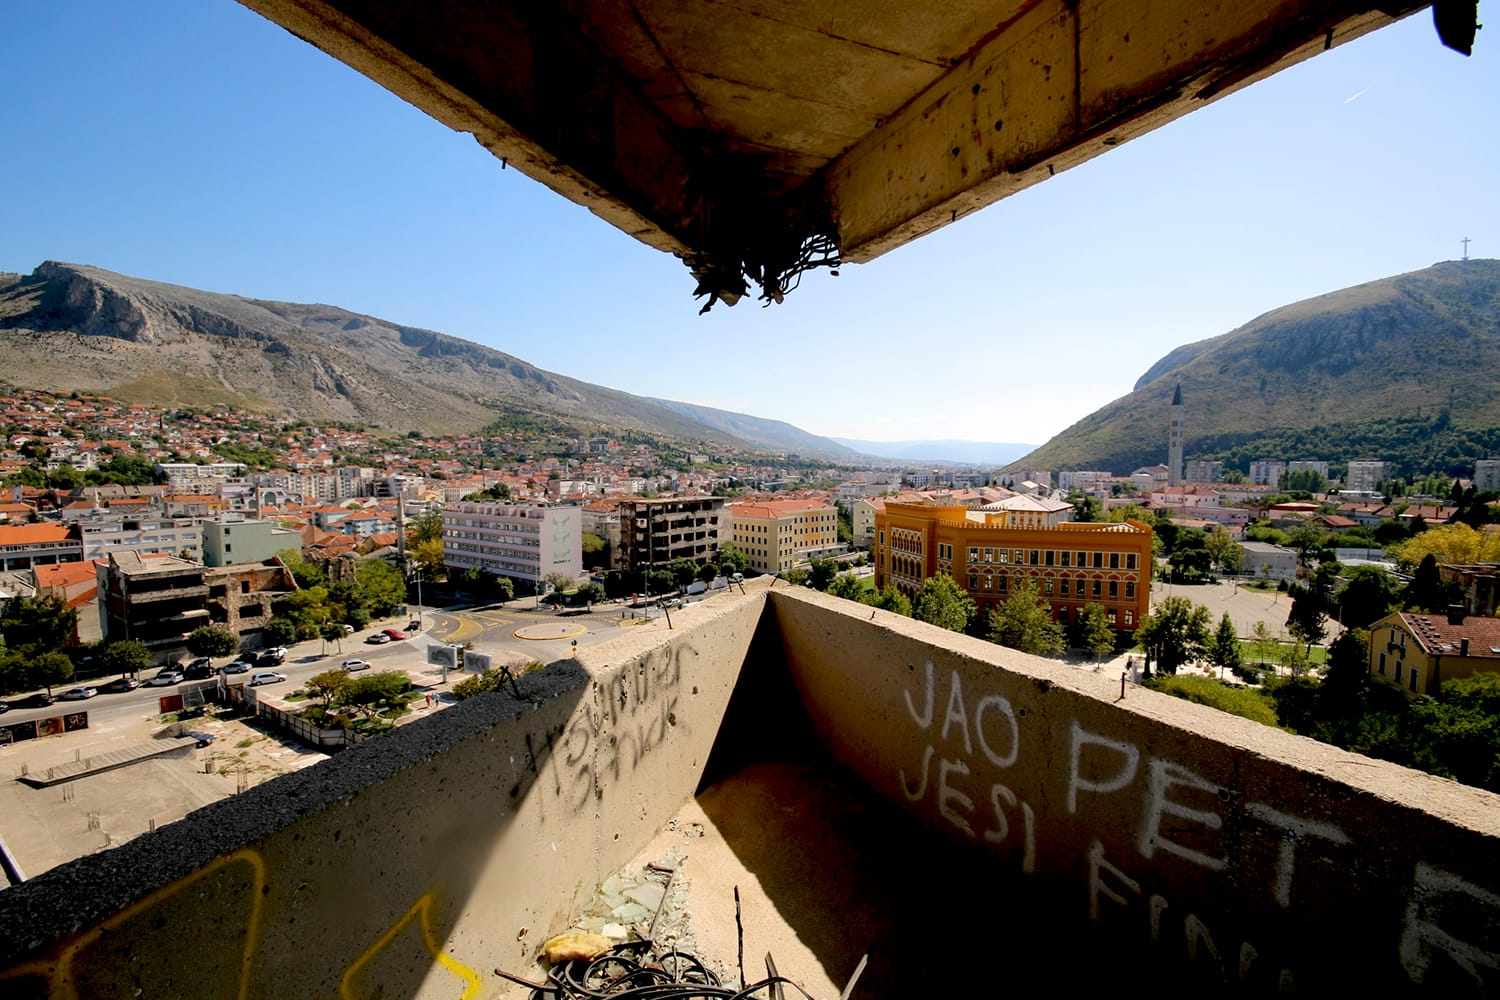 View from abandoned Sniper tower in Mostar, Bosnia & Herzegovina